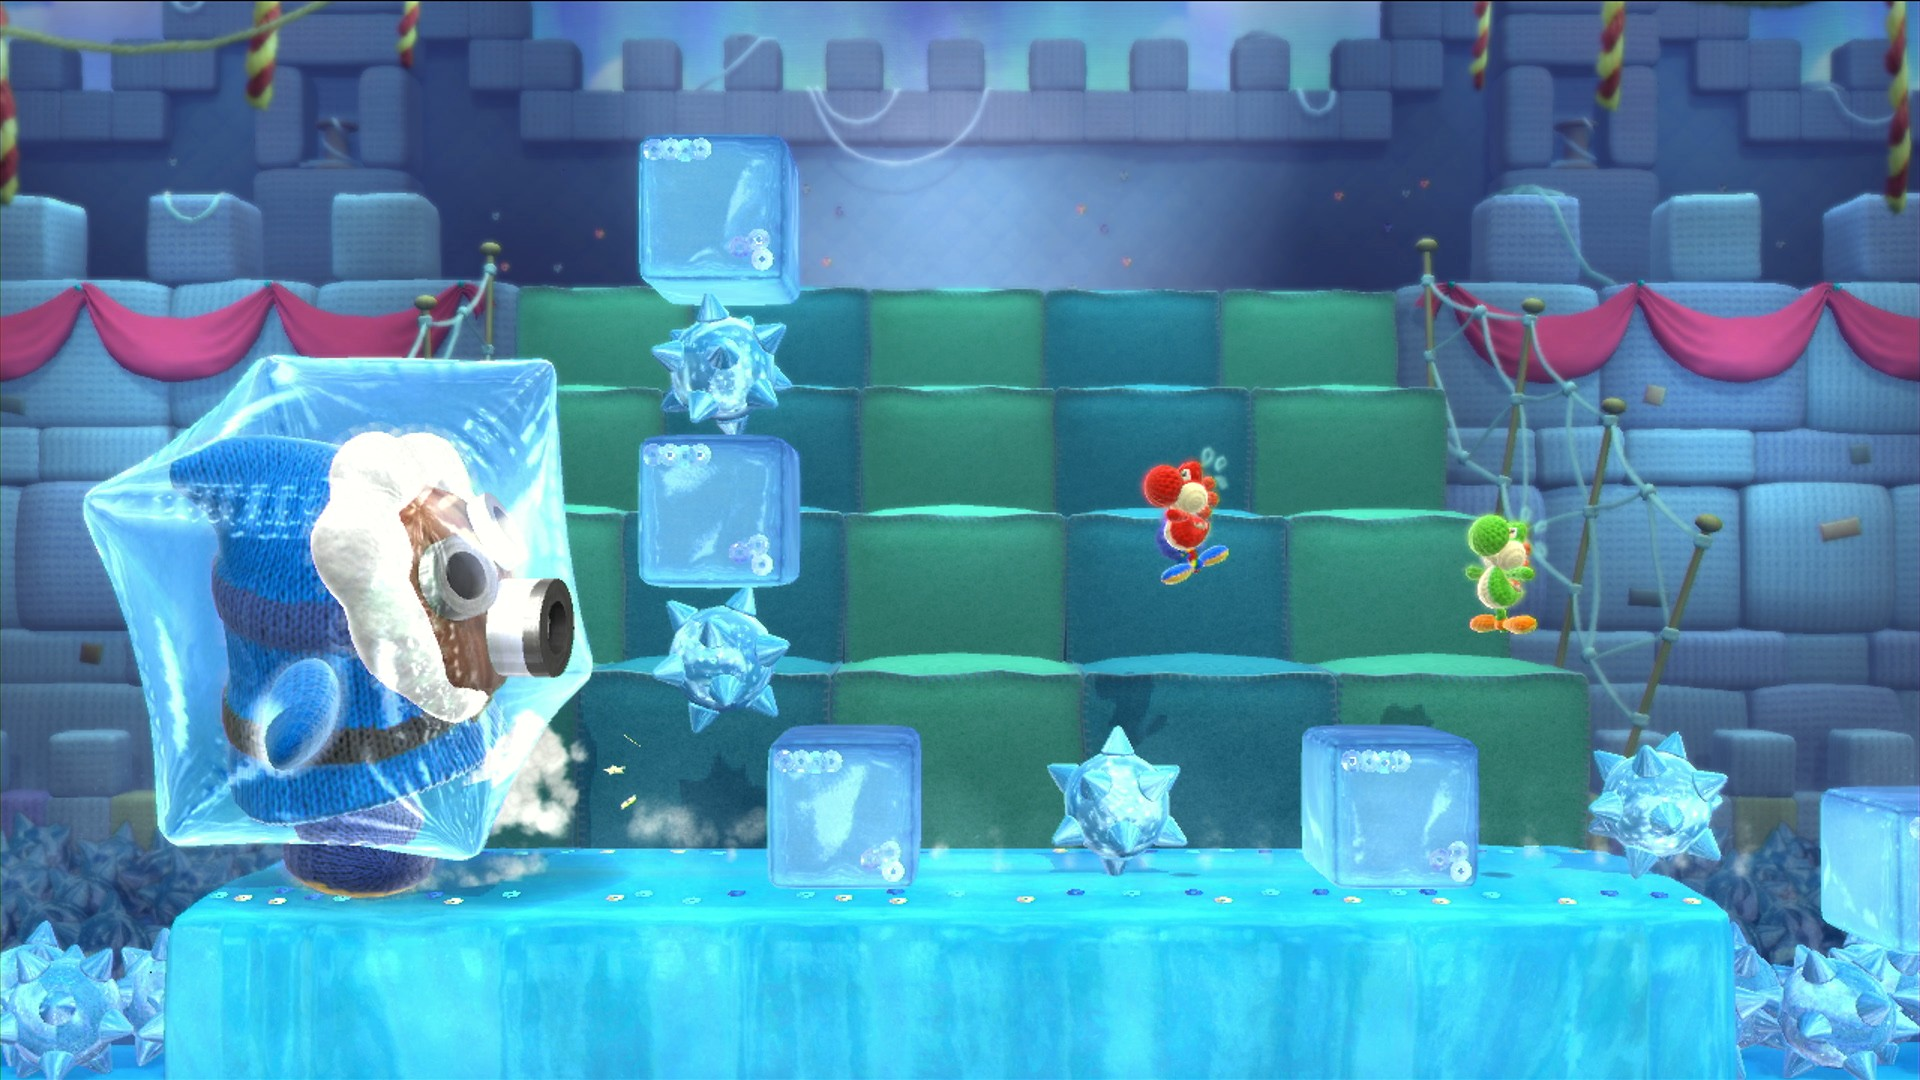 Yoshi's Wooly World Review